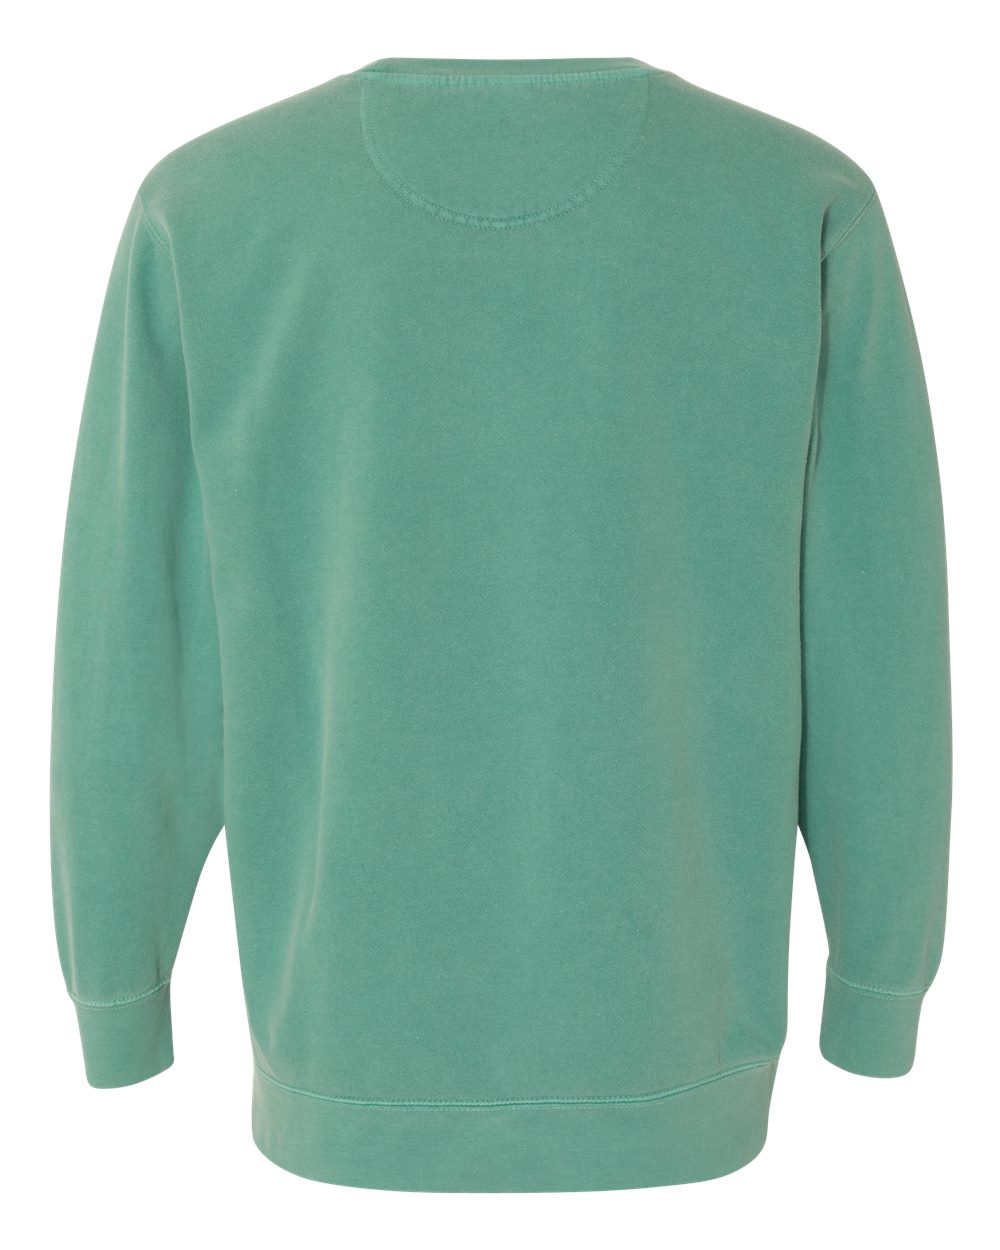 Comfort-Colors-Mens-Garment-Dyed-Ringspun-Crewneck-Sweatshirt-1566-up-to-3XL miniature 52